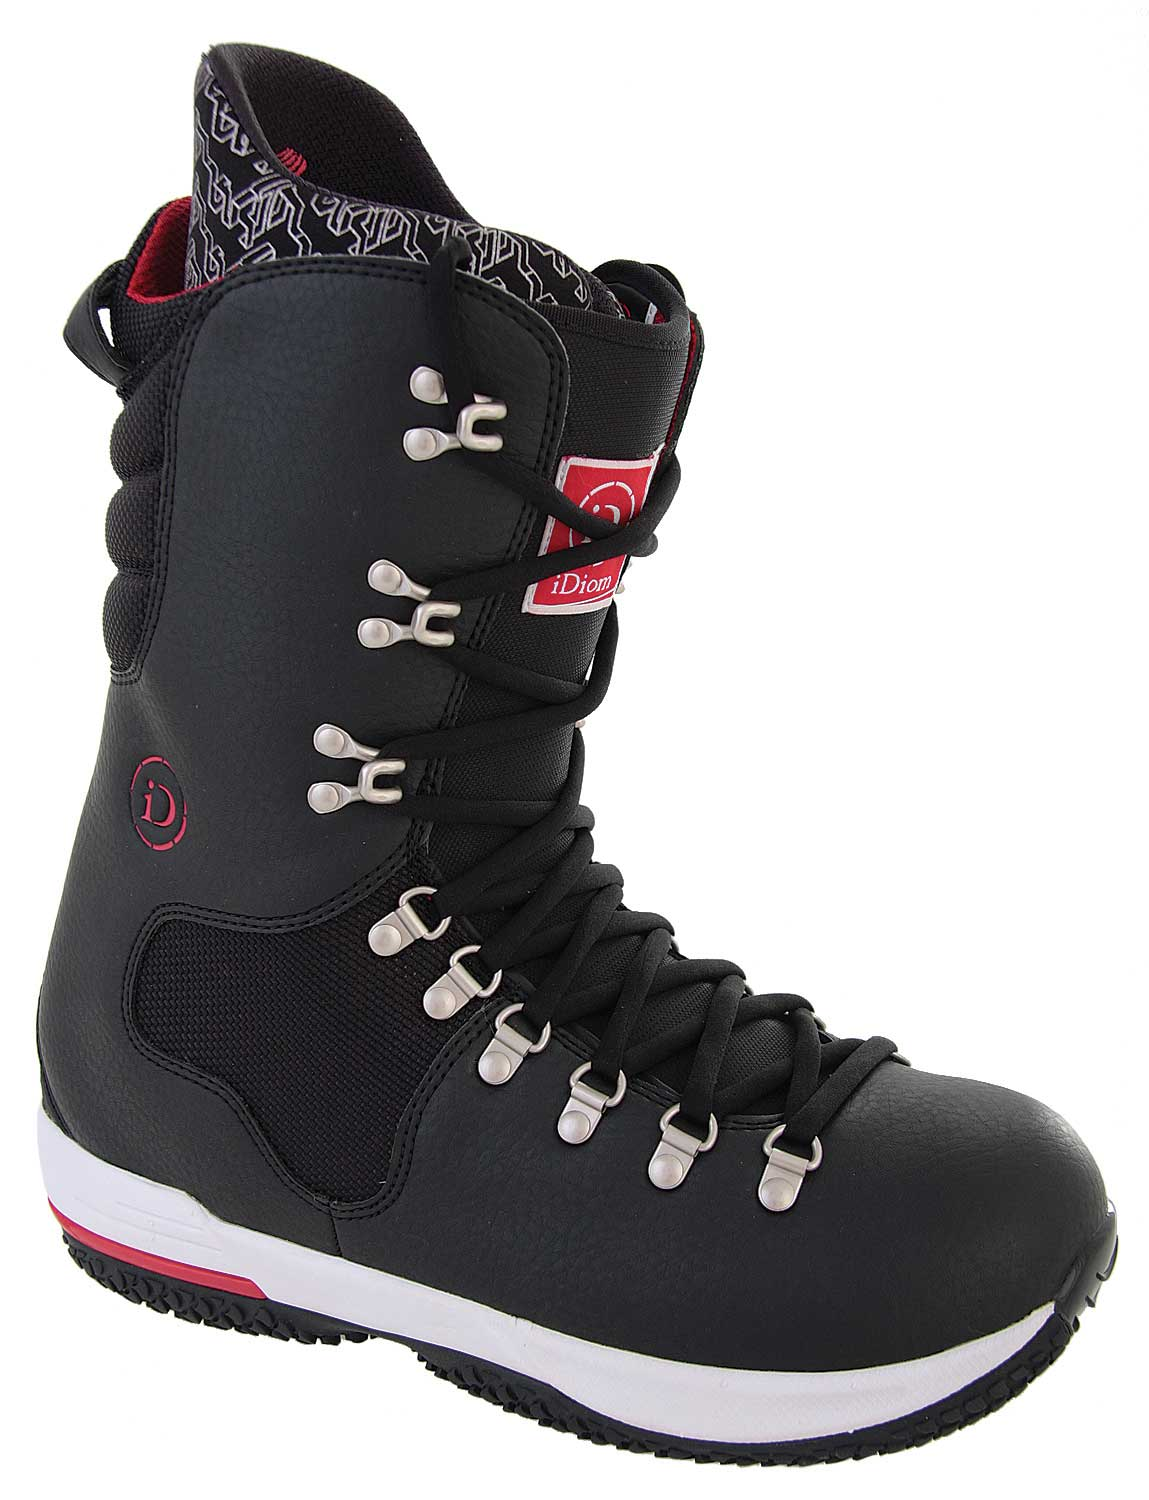 Snowboard If you're ready to hit the snow on your next trip, then you need to go in the right type of shoes. If you're tired of taking old, uncomfortable, boots that don't keep your feet warm, then you need to grab yourself a pair of Burton Idiom Snowboard Boots in Black. So what the big deal about these boots you ask  This pair of boots is light weighted and has special cushioning, which will keep your feet comfortable so you won't tire out. Furthermore, they have a great appearance. So if you want to head to snow in style and in comfort, get yours today!Key Features of the Burton Idiom Snowboard Boots:  Upper Material: Full grain and nubuck leather  3D molded Eva tongue with gel bone out  5-part outsole with skydex heel and forefront cushioning  Lightweight Eva 4 liner with PU support panels and integrated power strap  Dual component motocross style hooks  Aegis anti-microbial coating on the liner and footbed  Inner cuff lacing harness with adjustable heel hold inserts   RAF tongue stiffener for adjustable boot flex - $98.95